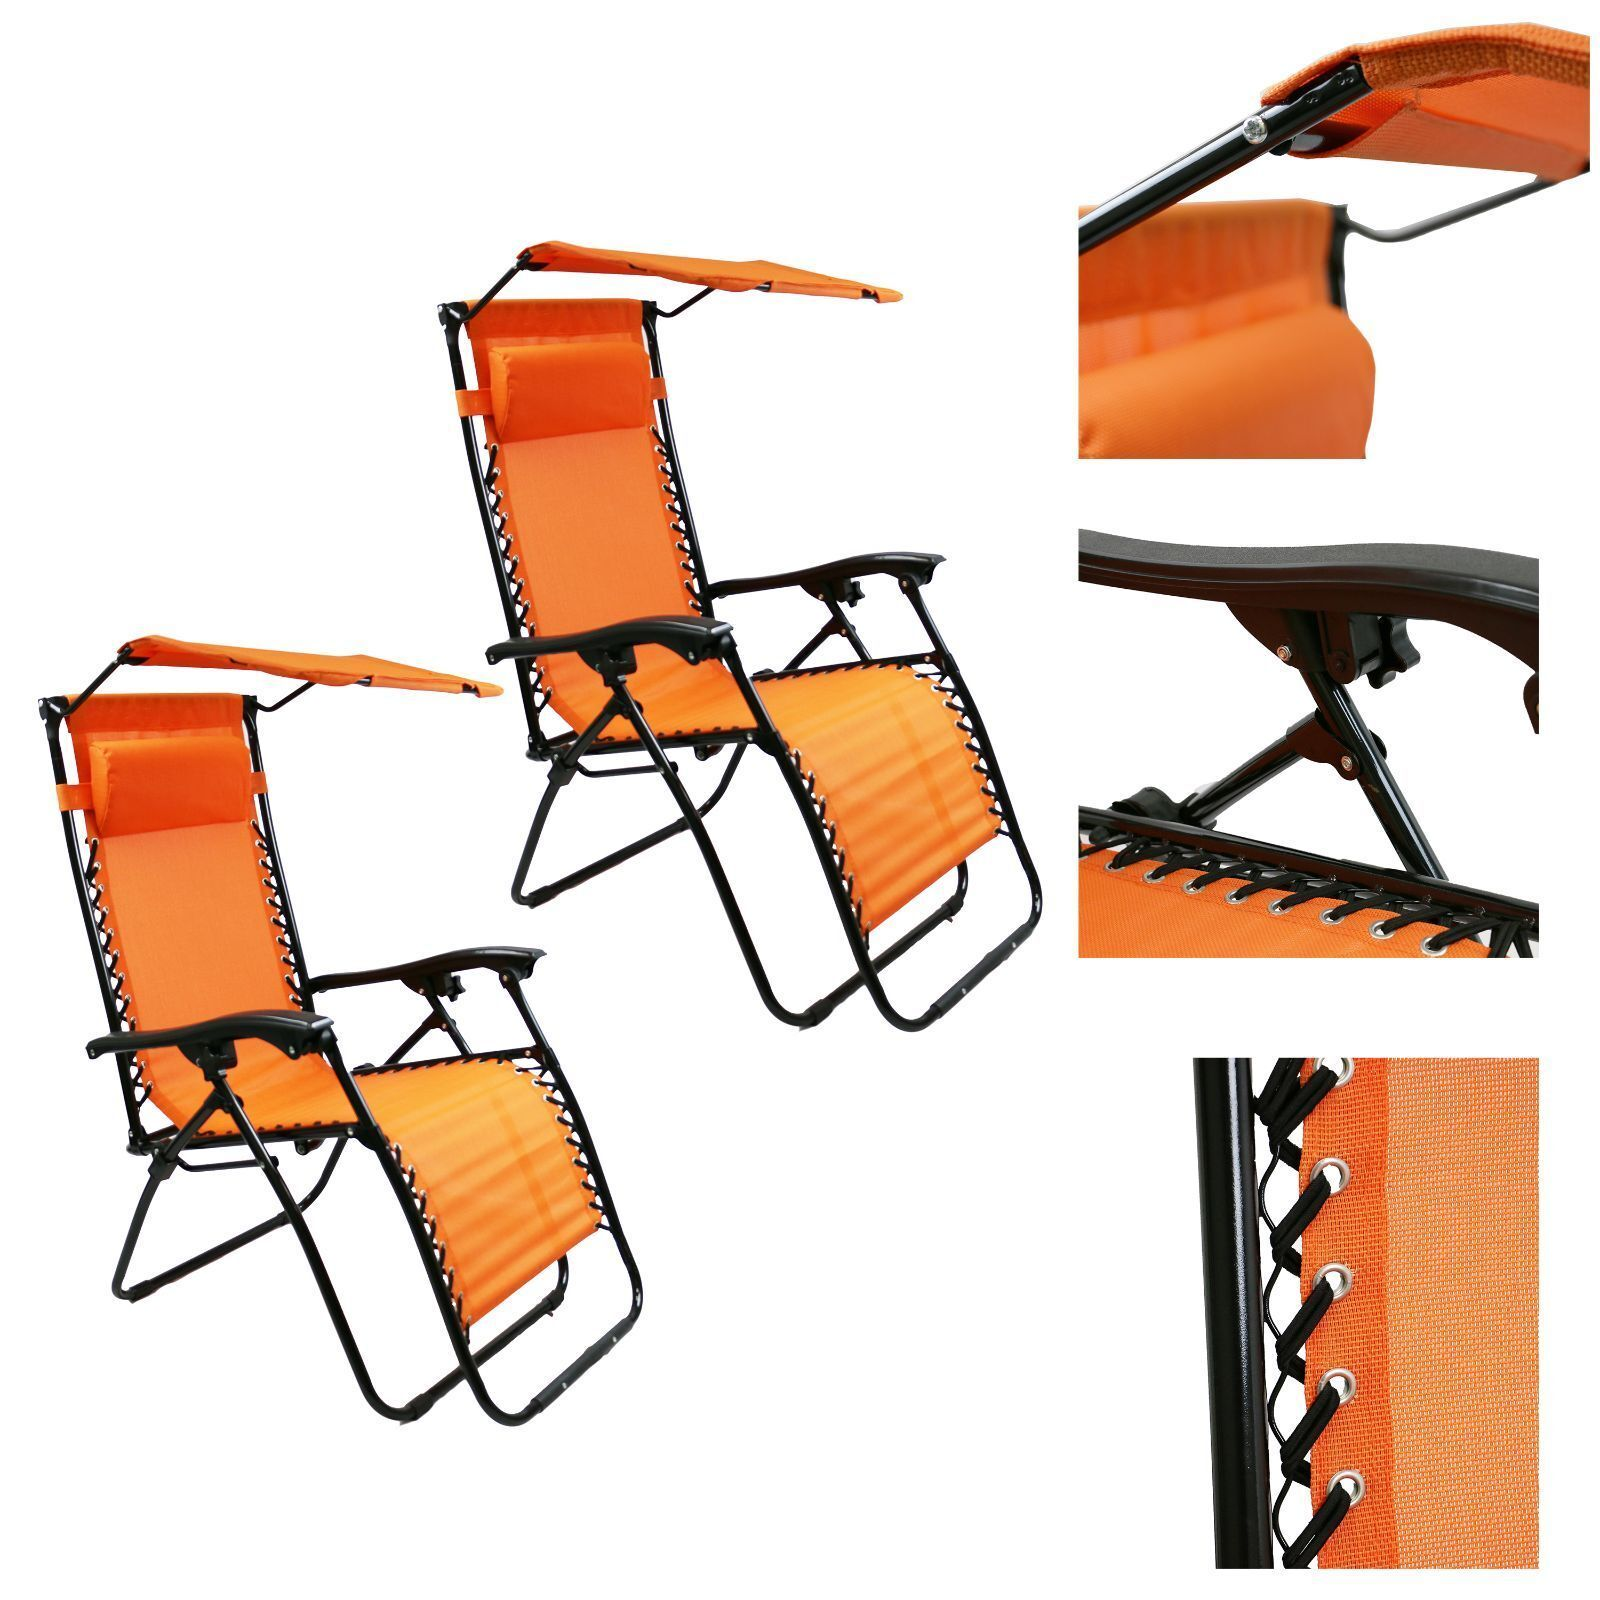 Folding Lounge Chairs 2pc Lounge Patio Chairs Outdoor Yard Zero Gravity Folding